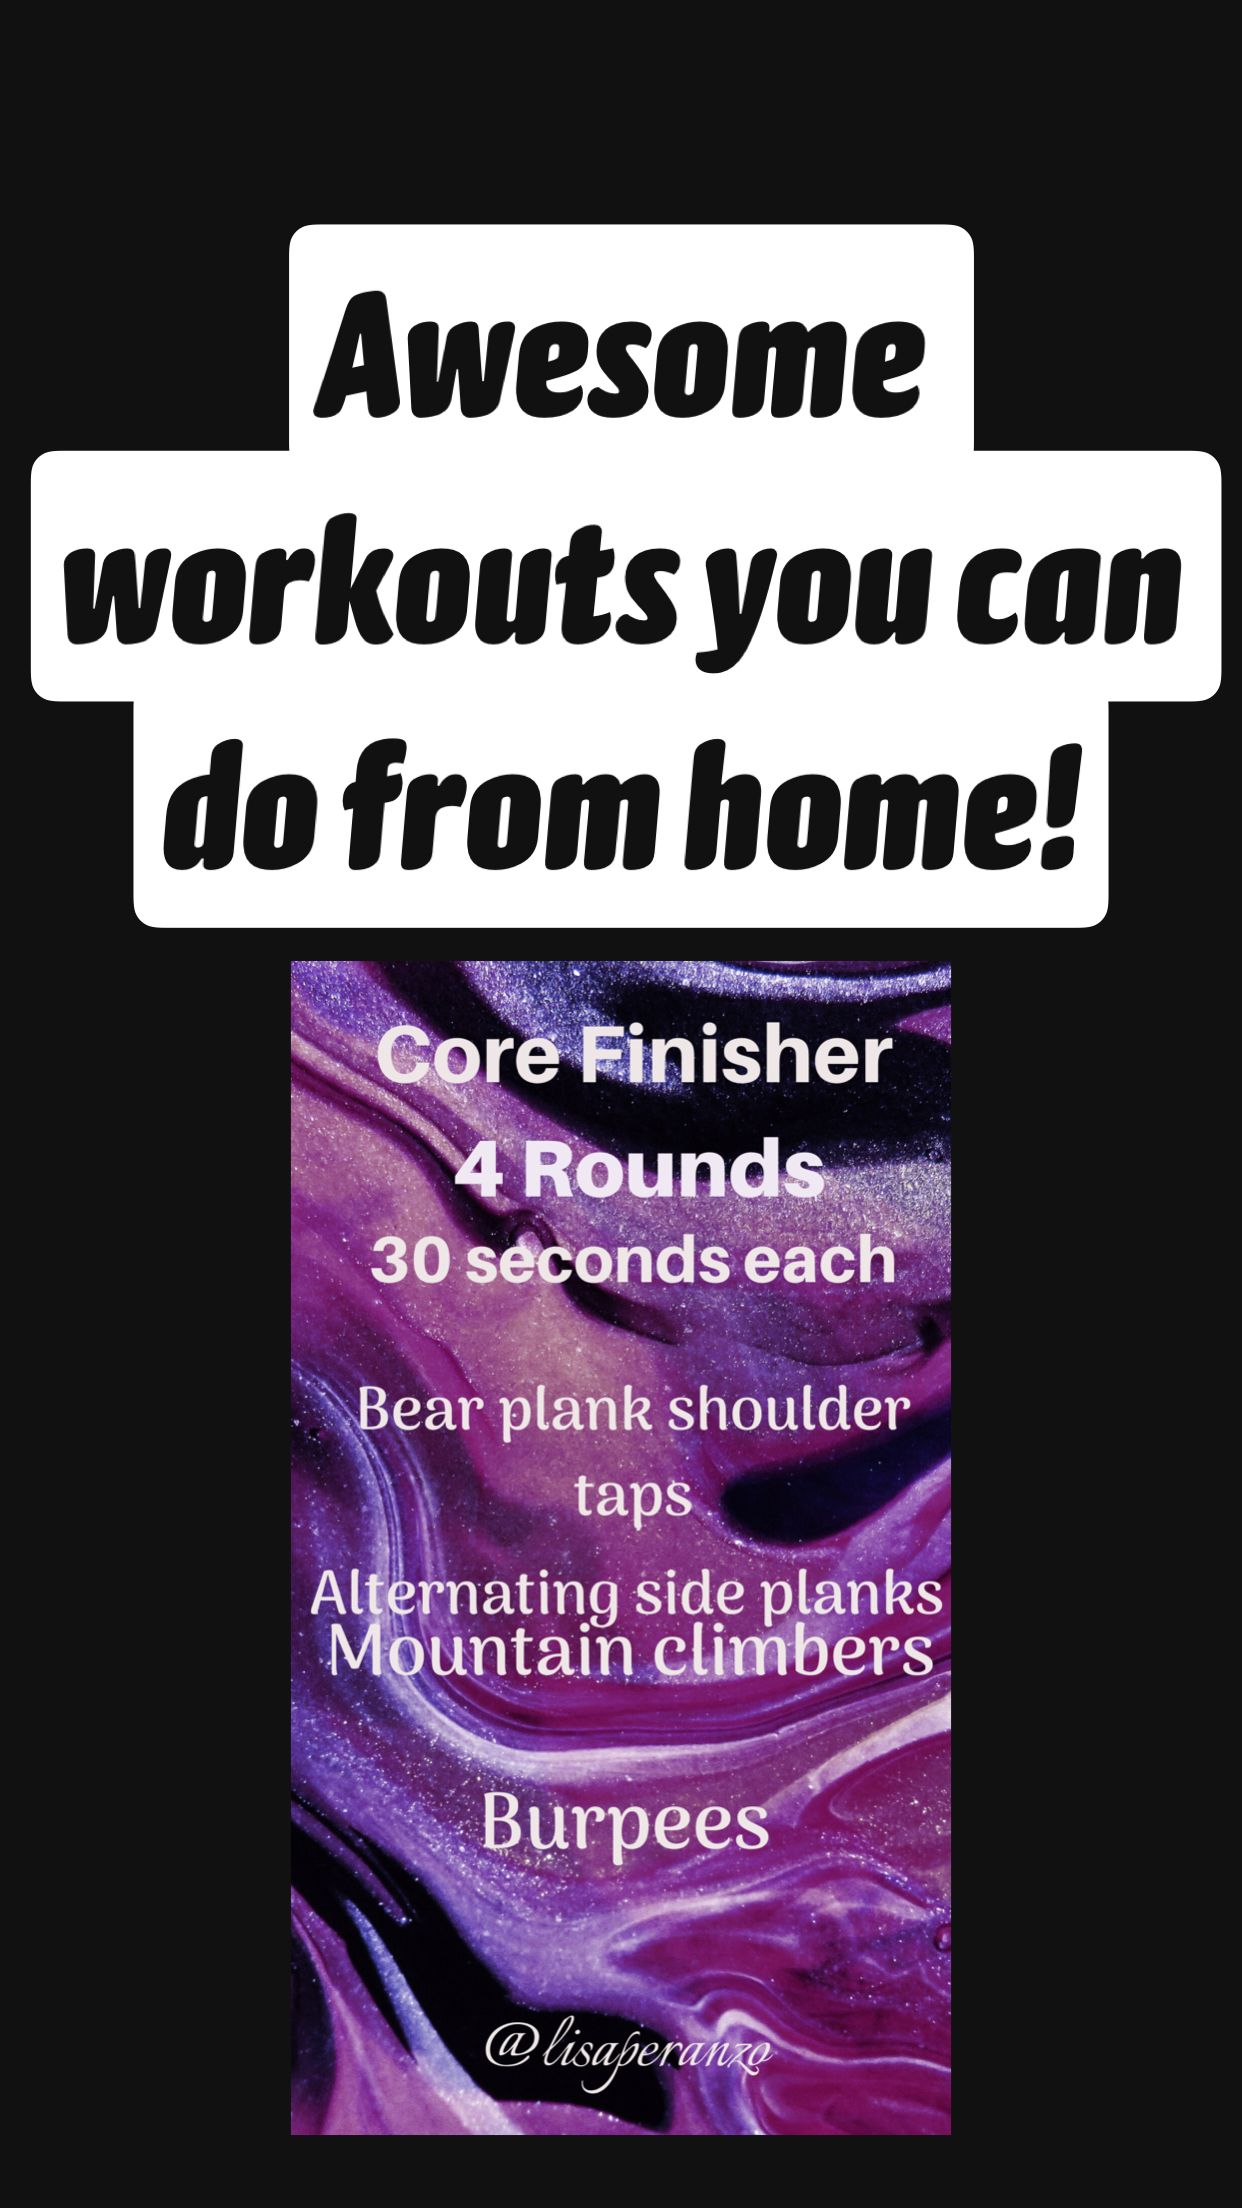 Awesome workouts you can do from home!